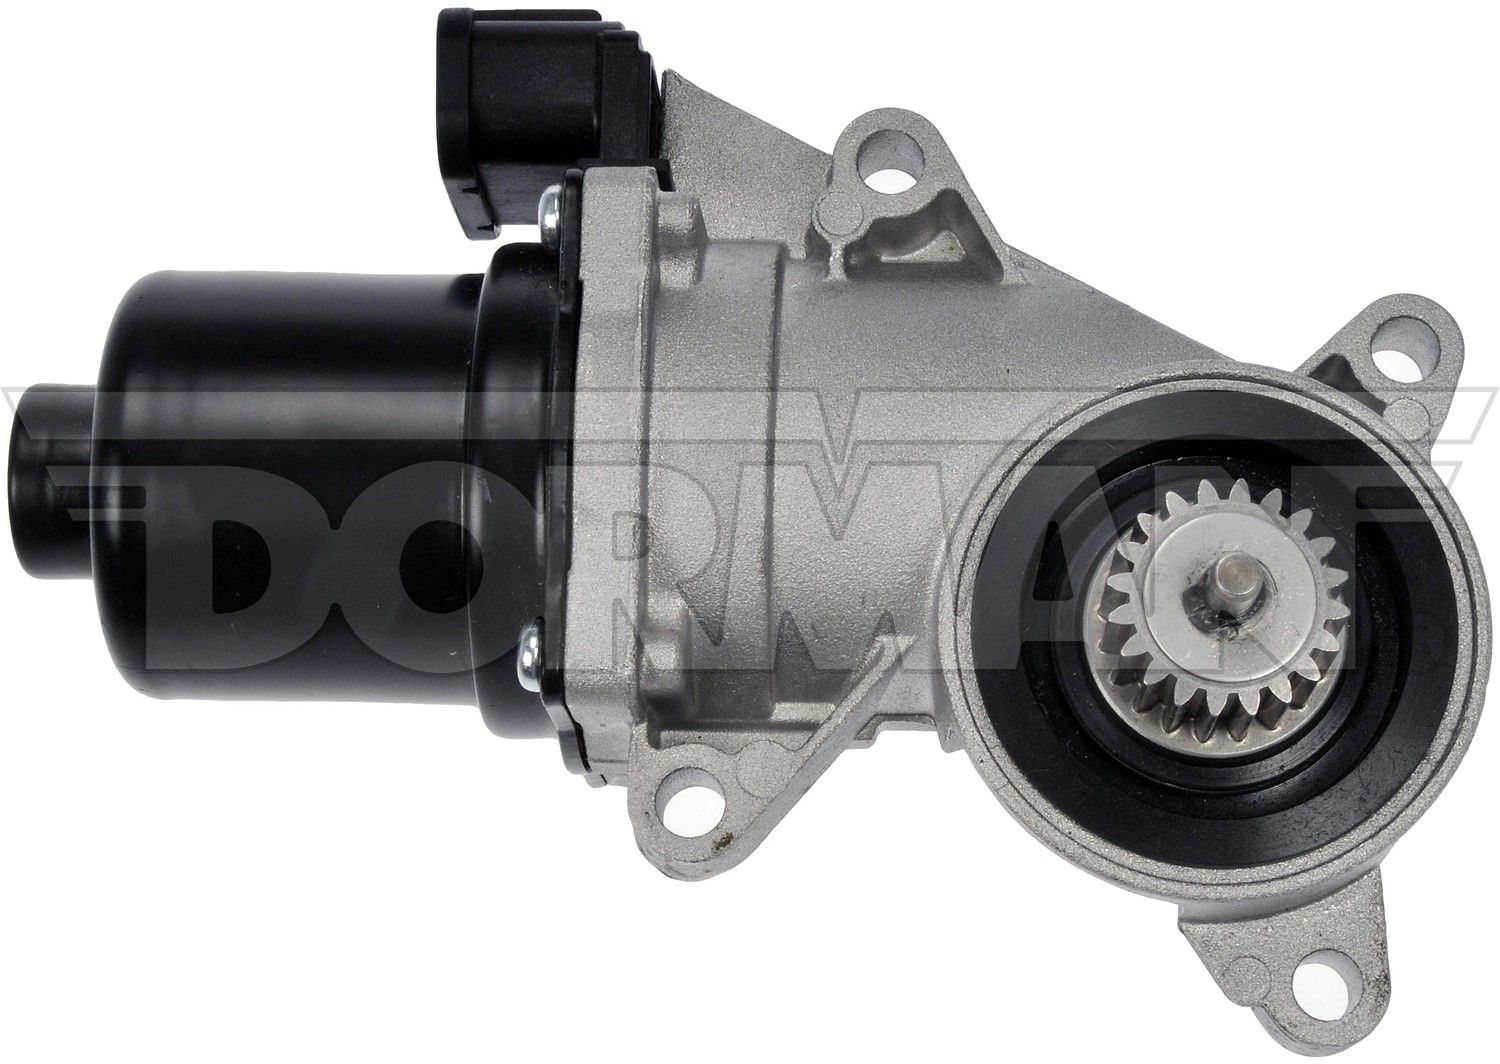 np8 or nr4 transfer case